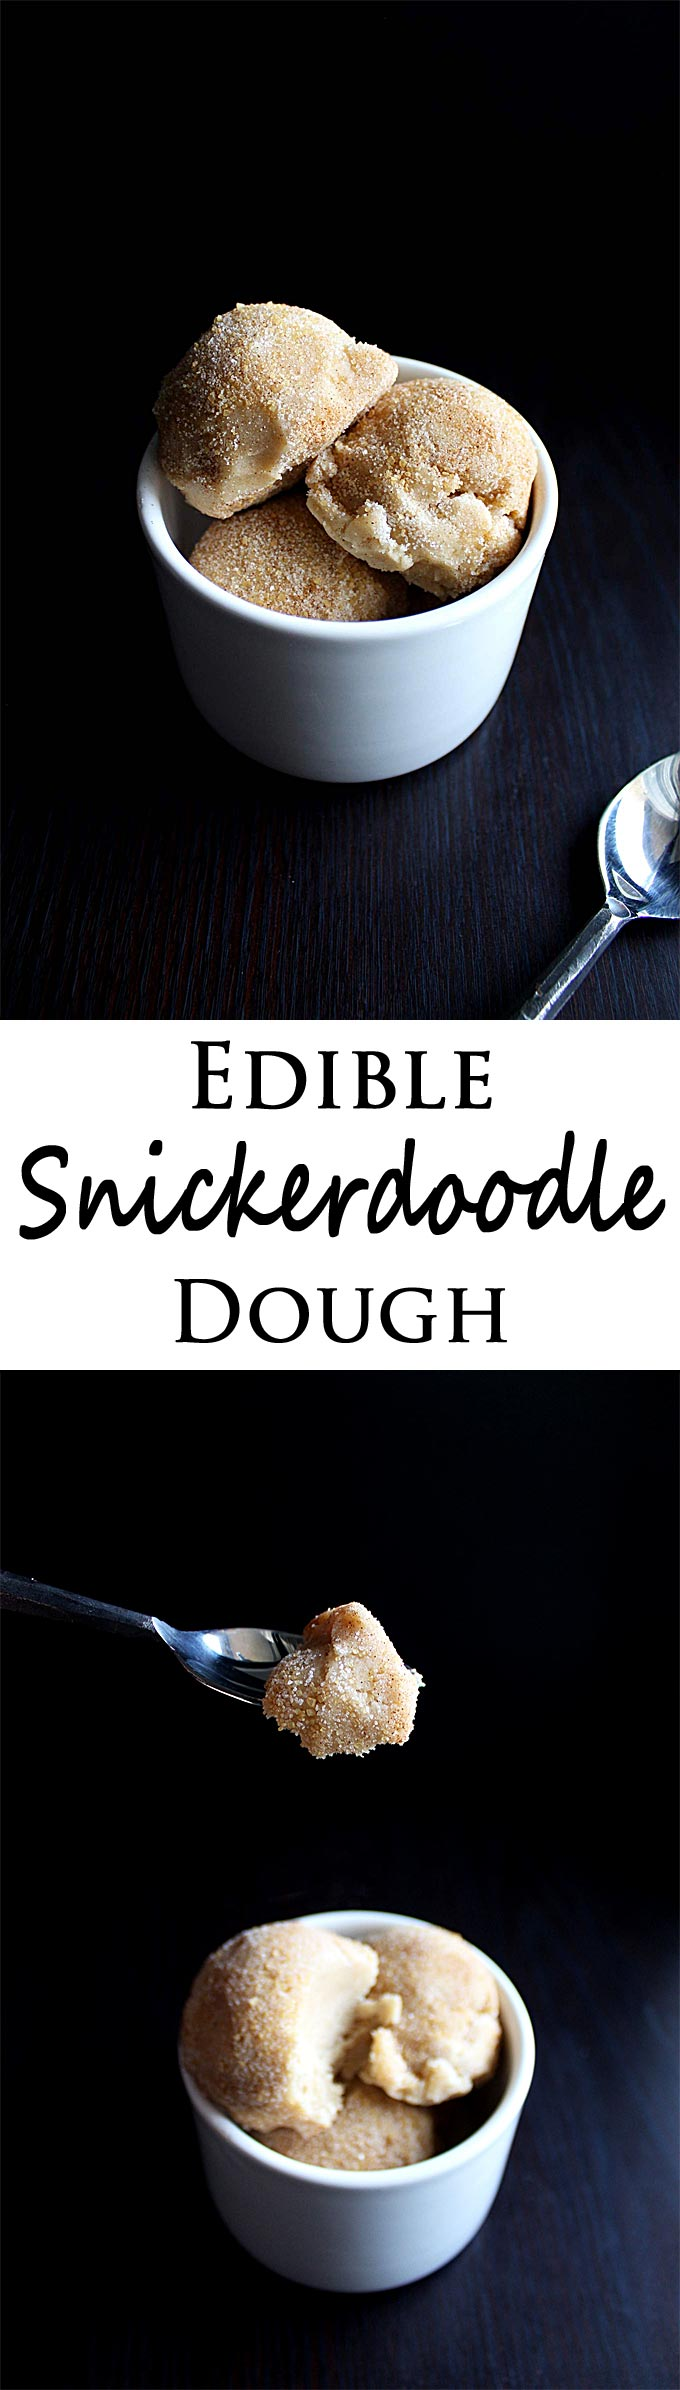 Edible Cookie Dough | Eggless Cookie Dough | Snickerdoodle Dough | Dessert | Cinnamon Sugar